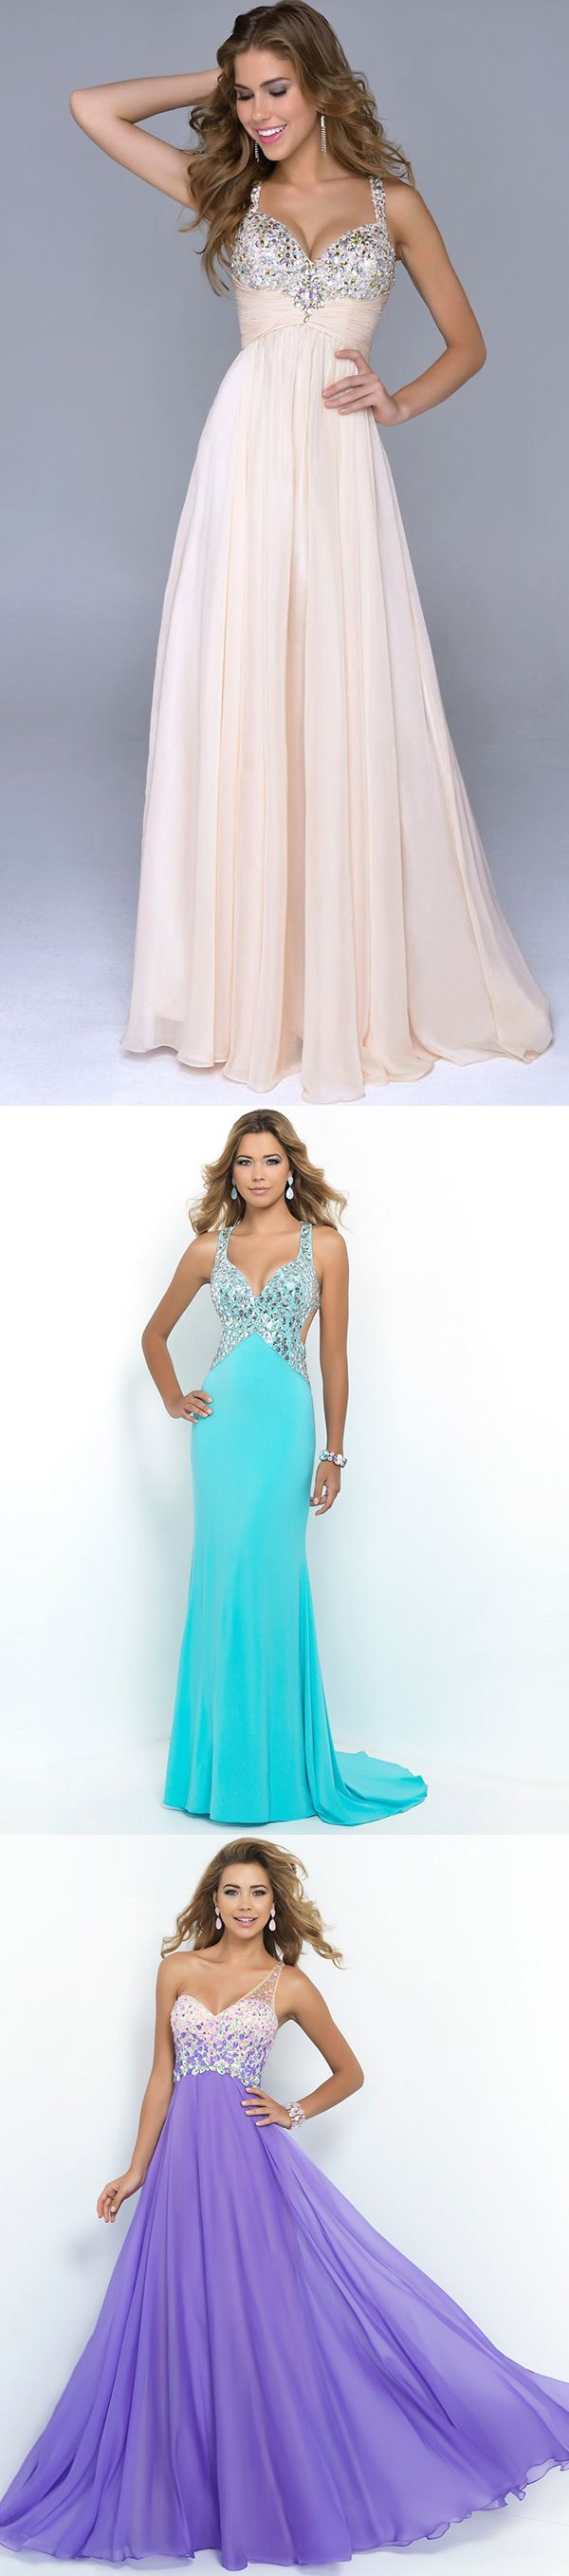 2016 Long Prom Dresses On Sales! 1000+ Styles from PromWill!